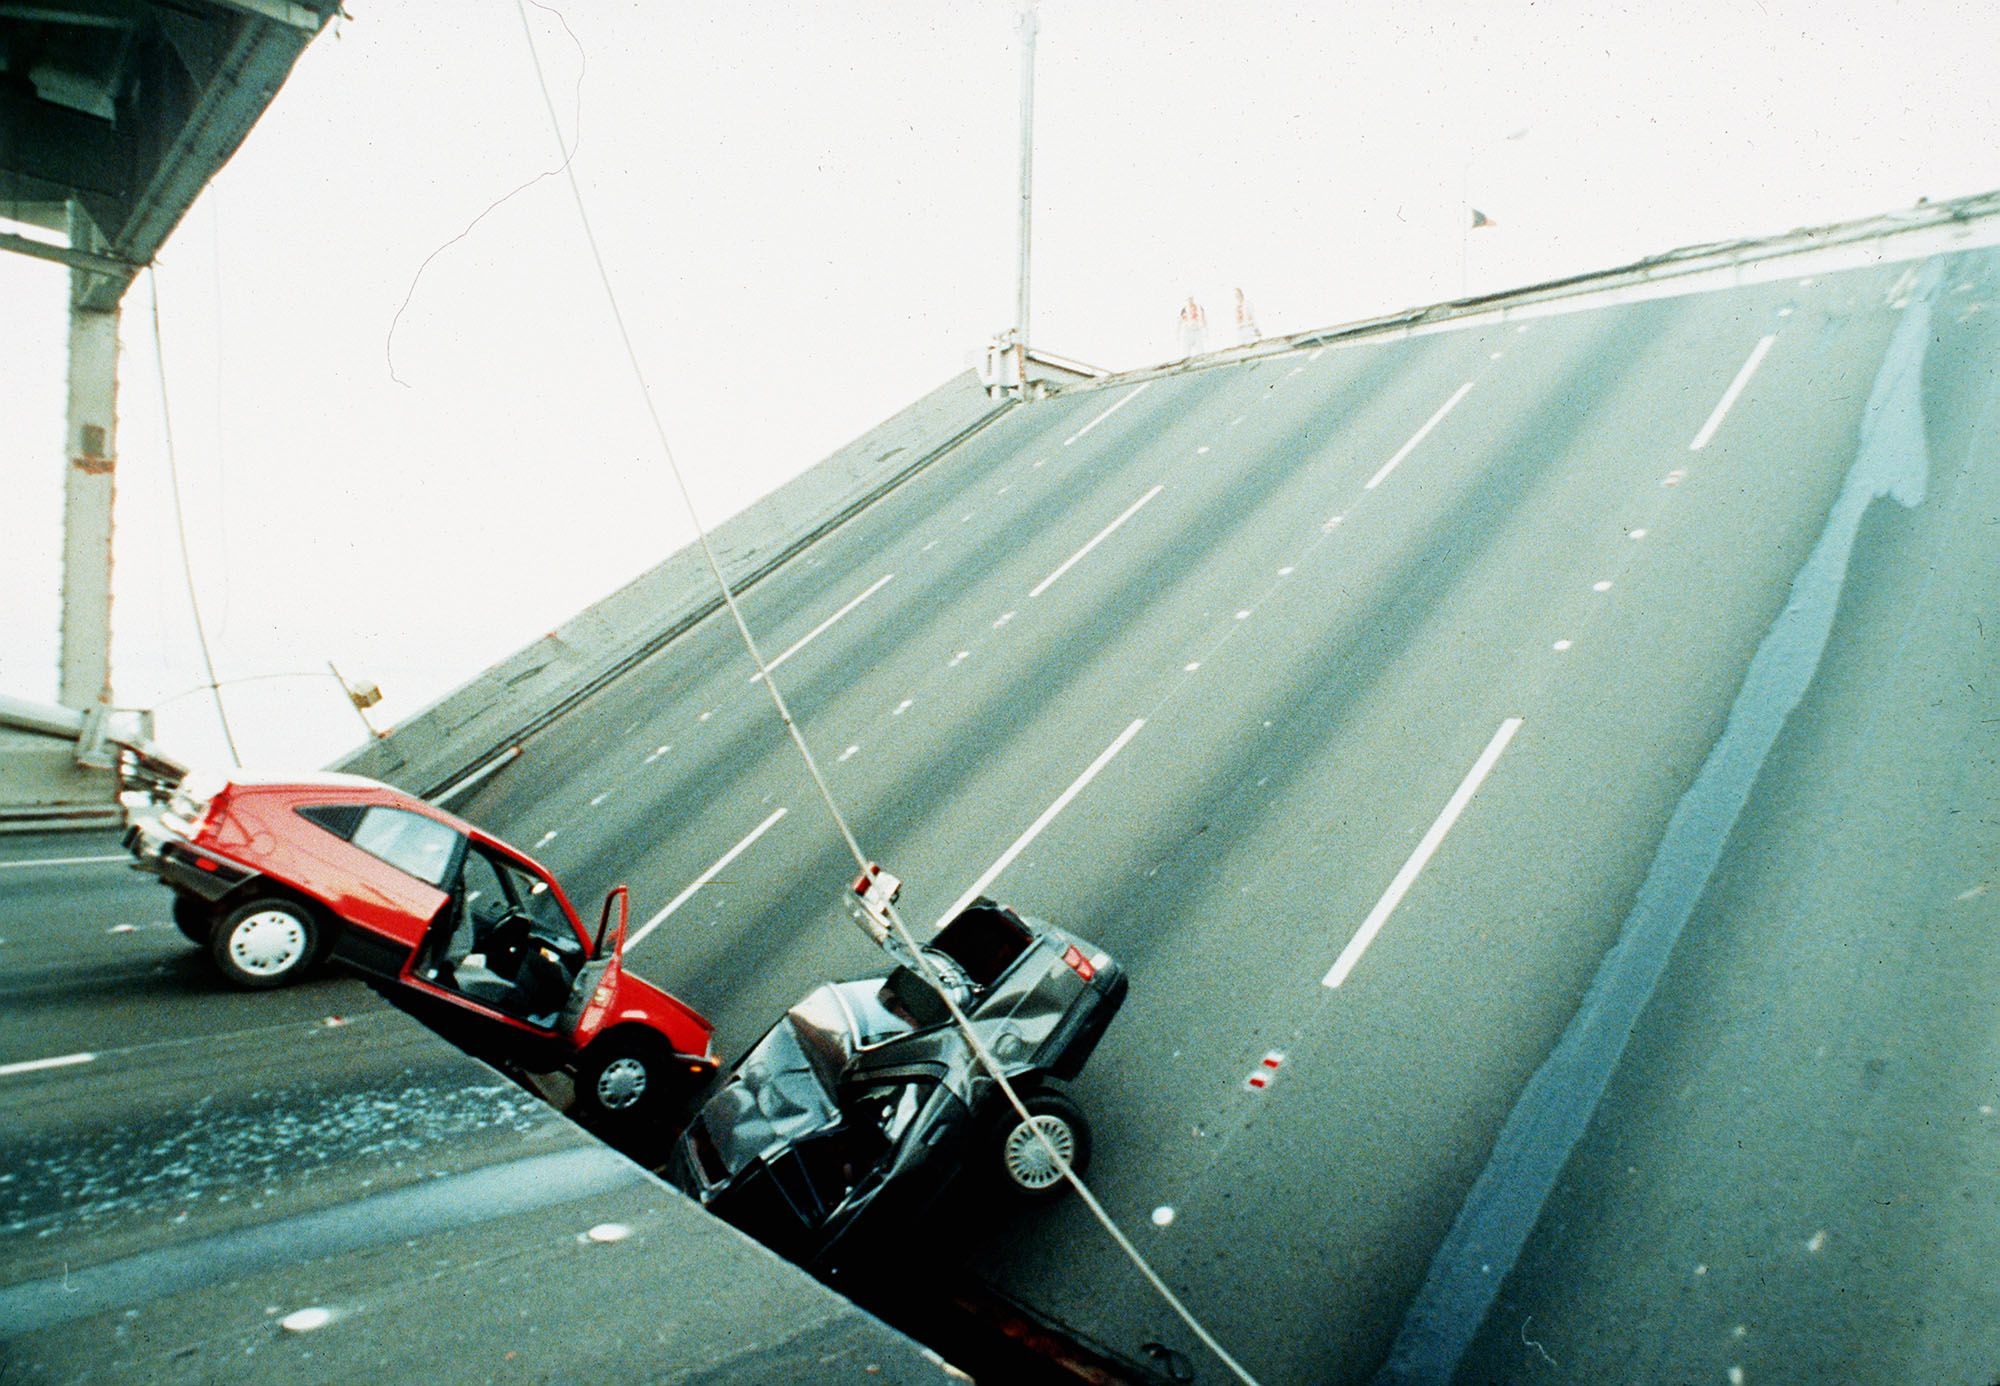 san francisco bay area earthquake 25 years later pictures cbs news